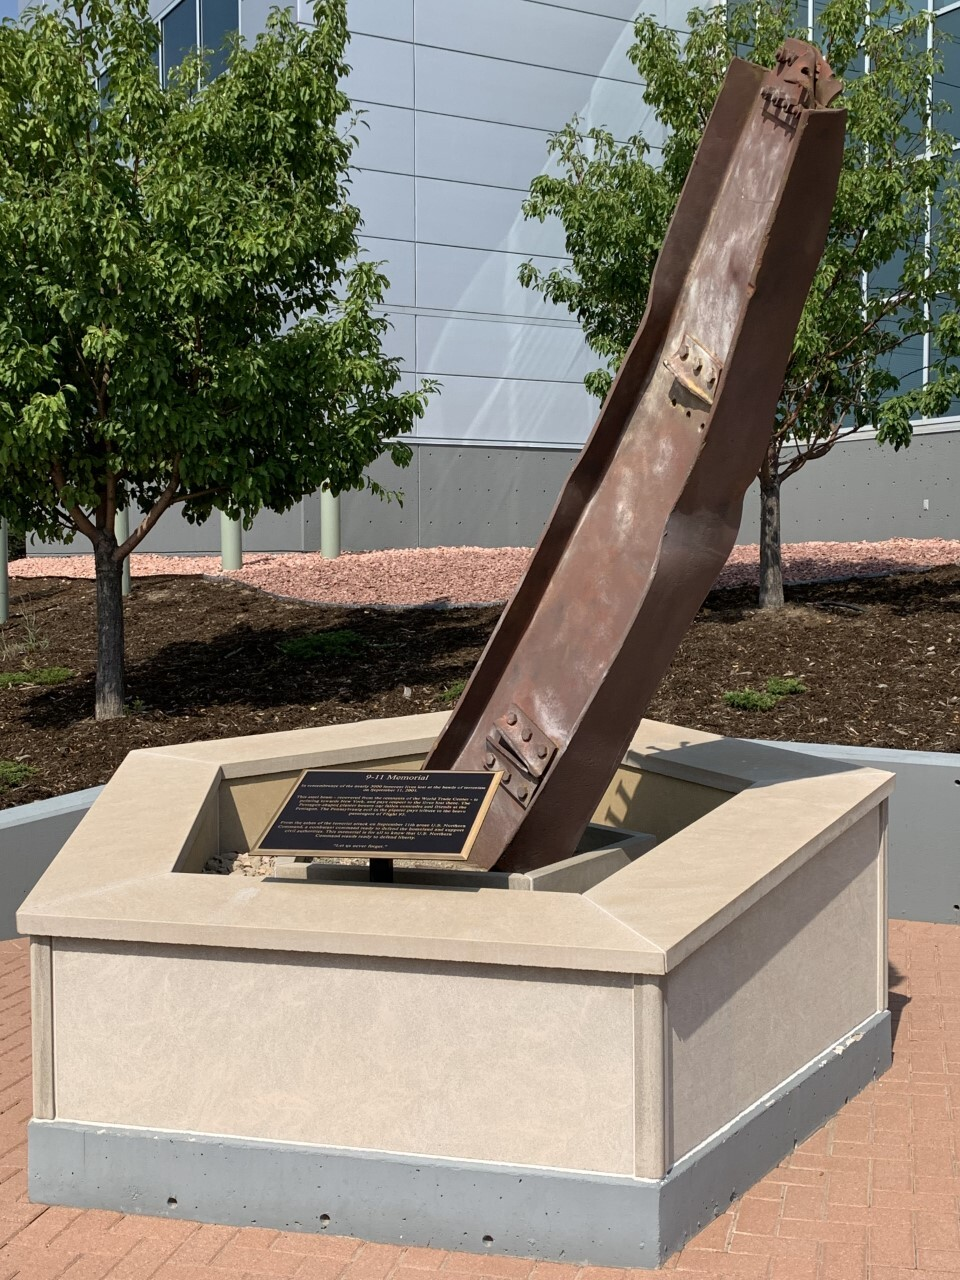 9-11 Memorial At Peterson Space Force Base